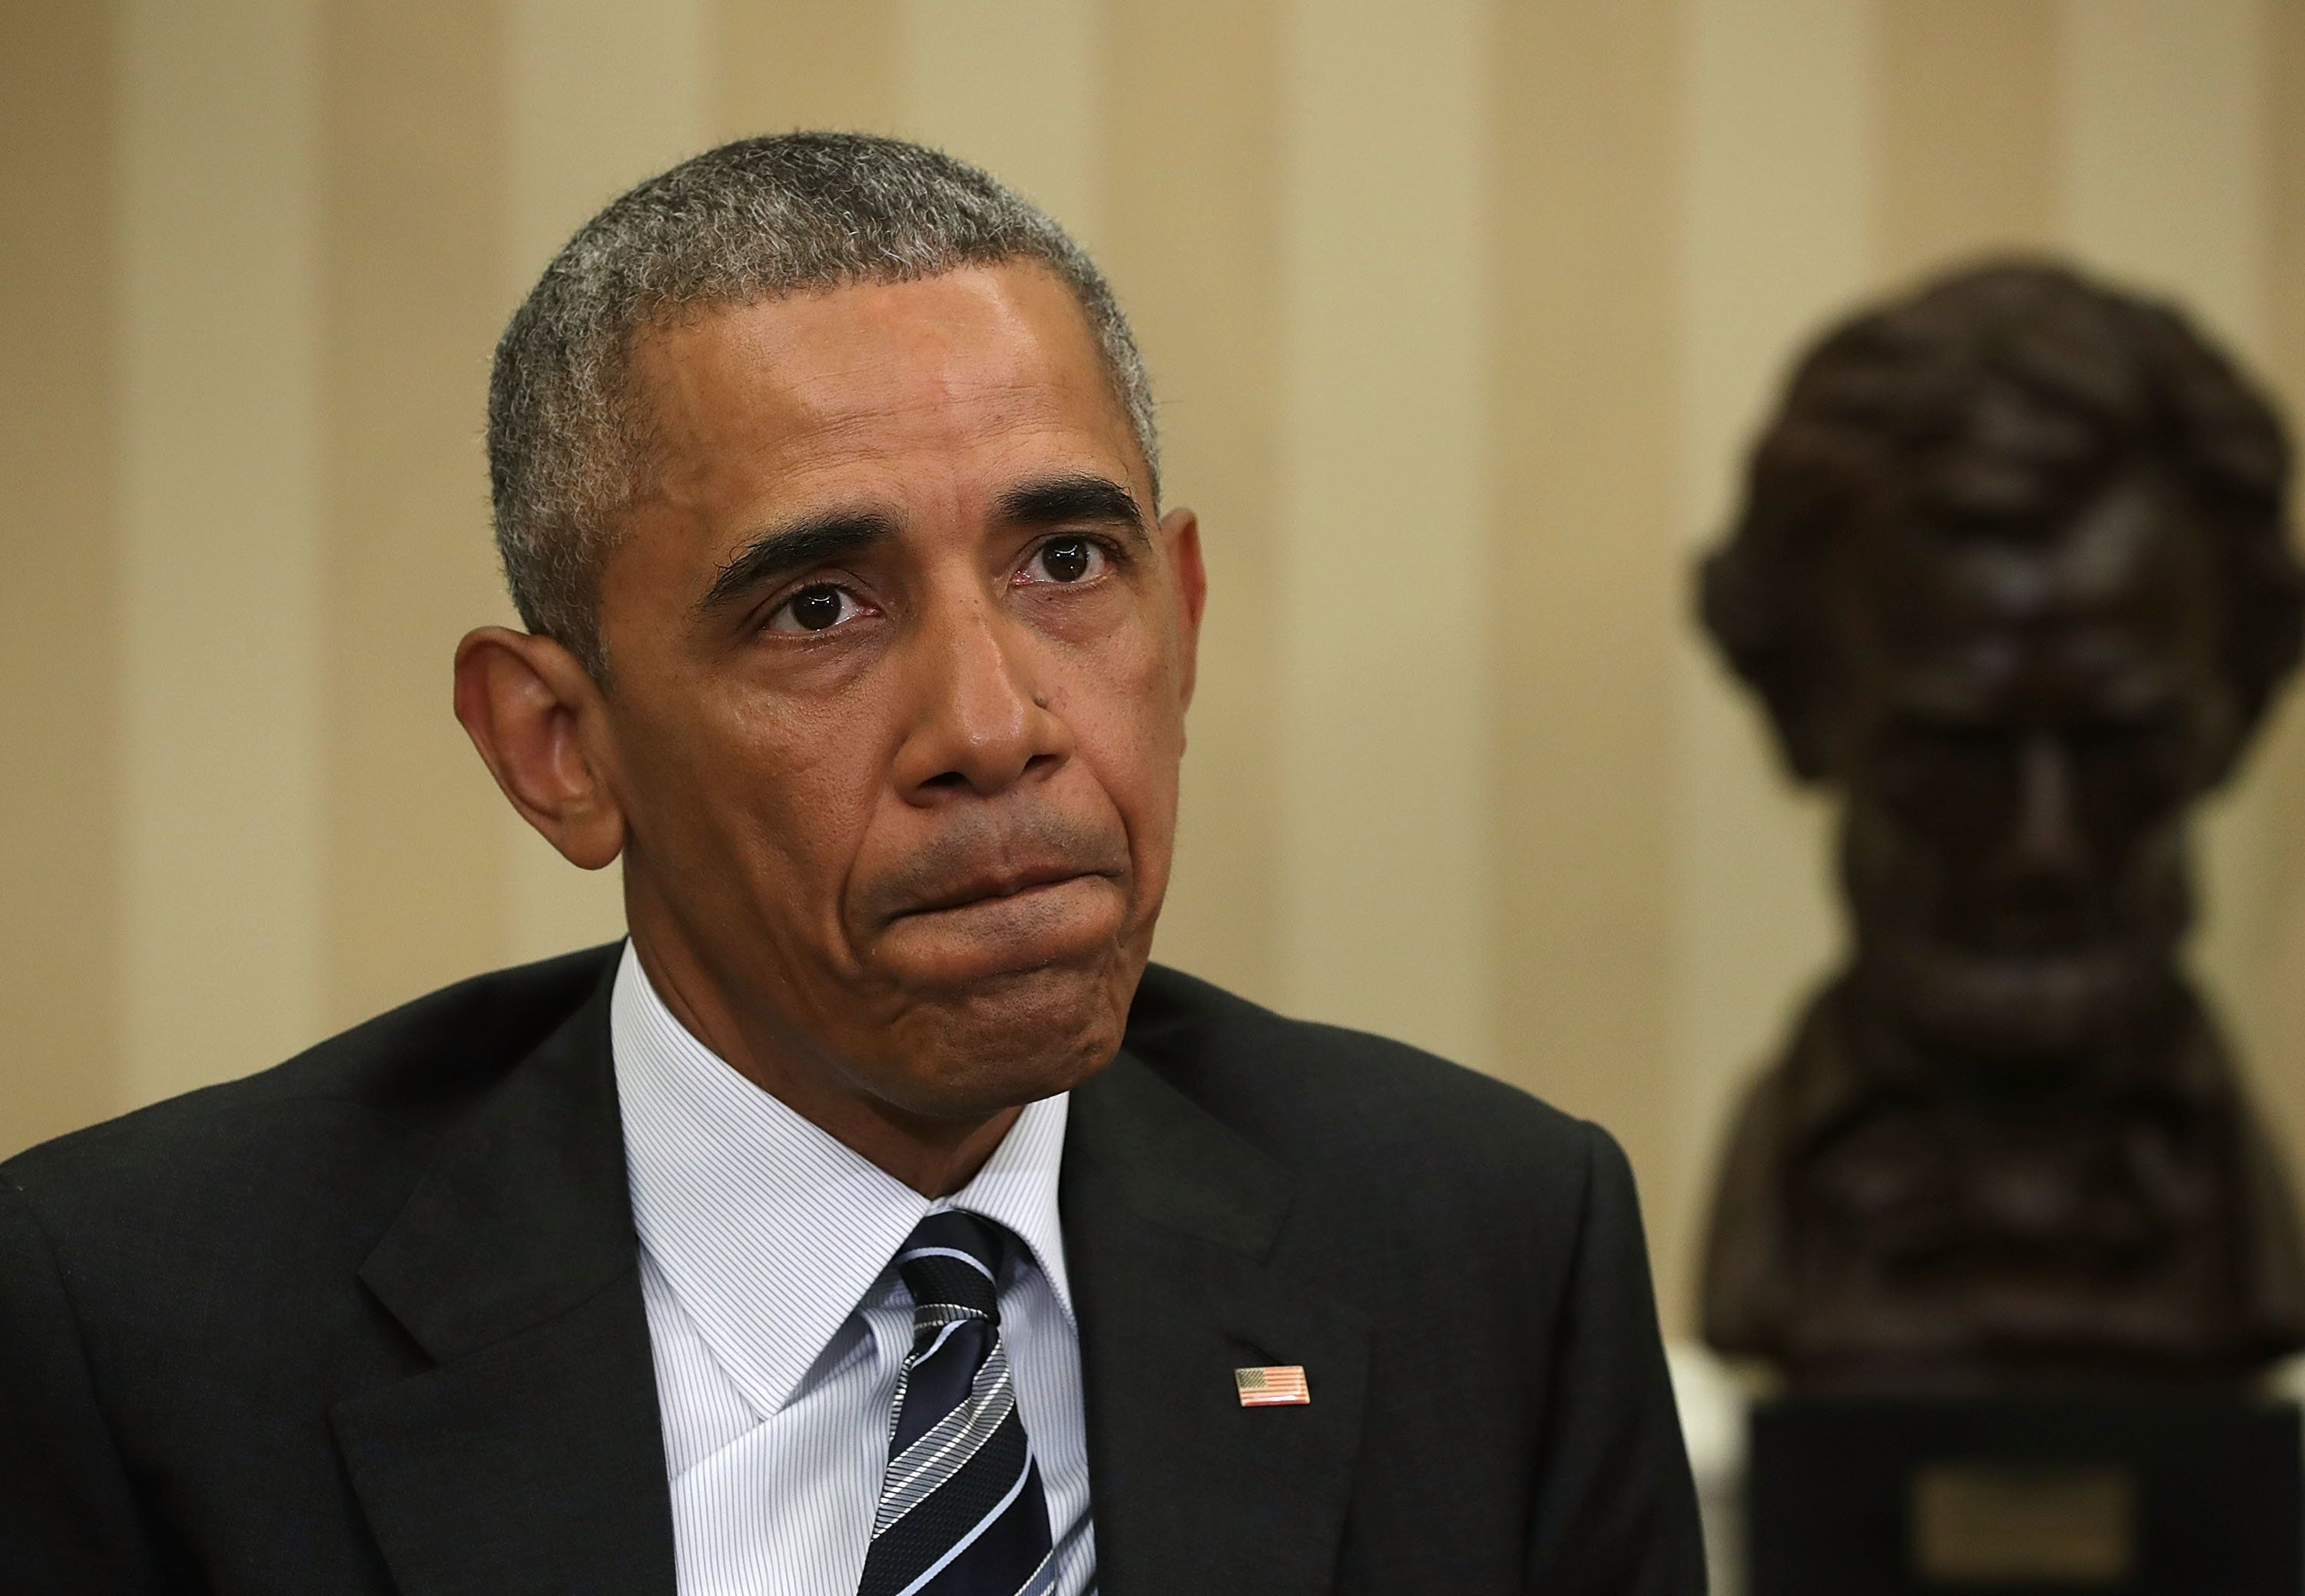 WASHINGTON, DC - JUNE 13:  U.S President Barack Obama pauses as he speaks during a meeting with FBI Director James Comey, Homeland Security Secretary Jeh Johnson, Director of the National Counterterrorism Center (NCTC) Nicholas Rasmussen, and Deputy Attorney General Sally Yates in the Oval Office of the White House June 13, 2016 in Washington, DC. President Obama received an update on the investigation into the attack in Orlando, Florida.  (Photo by Alex Wong/Getty Images)